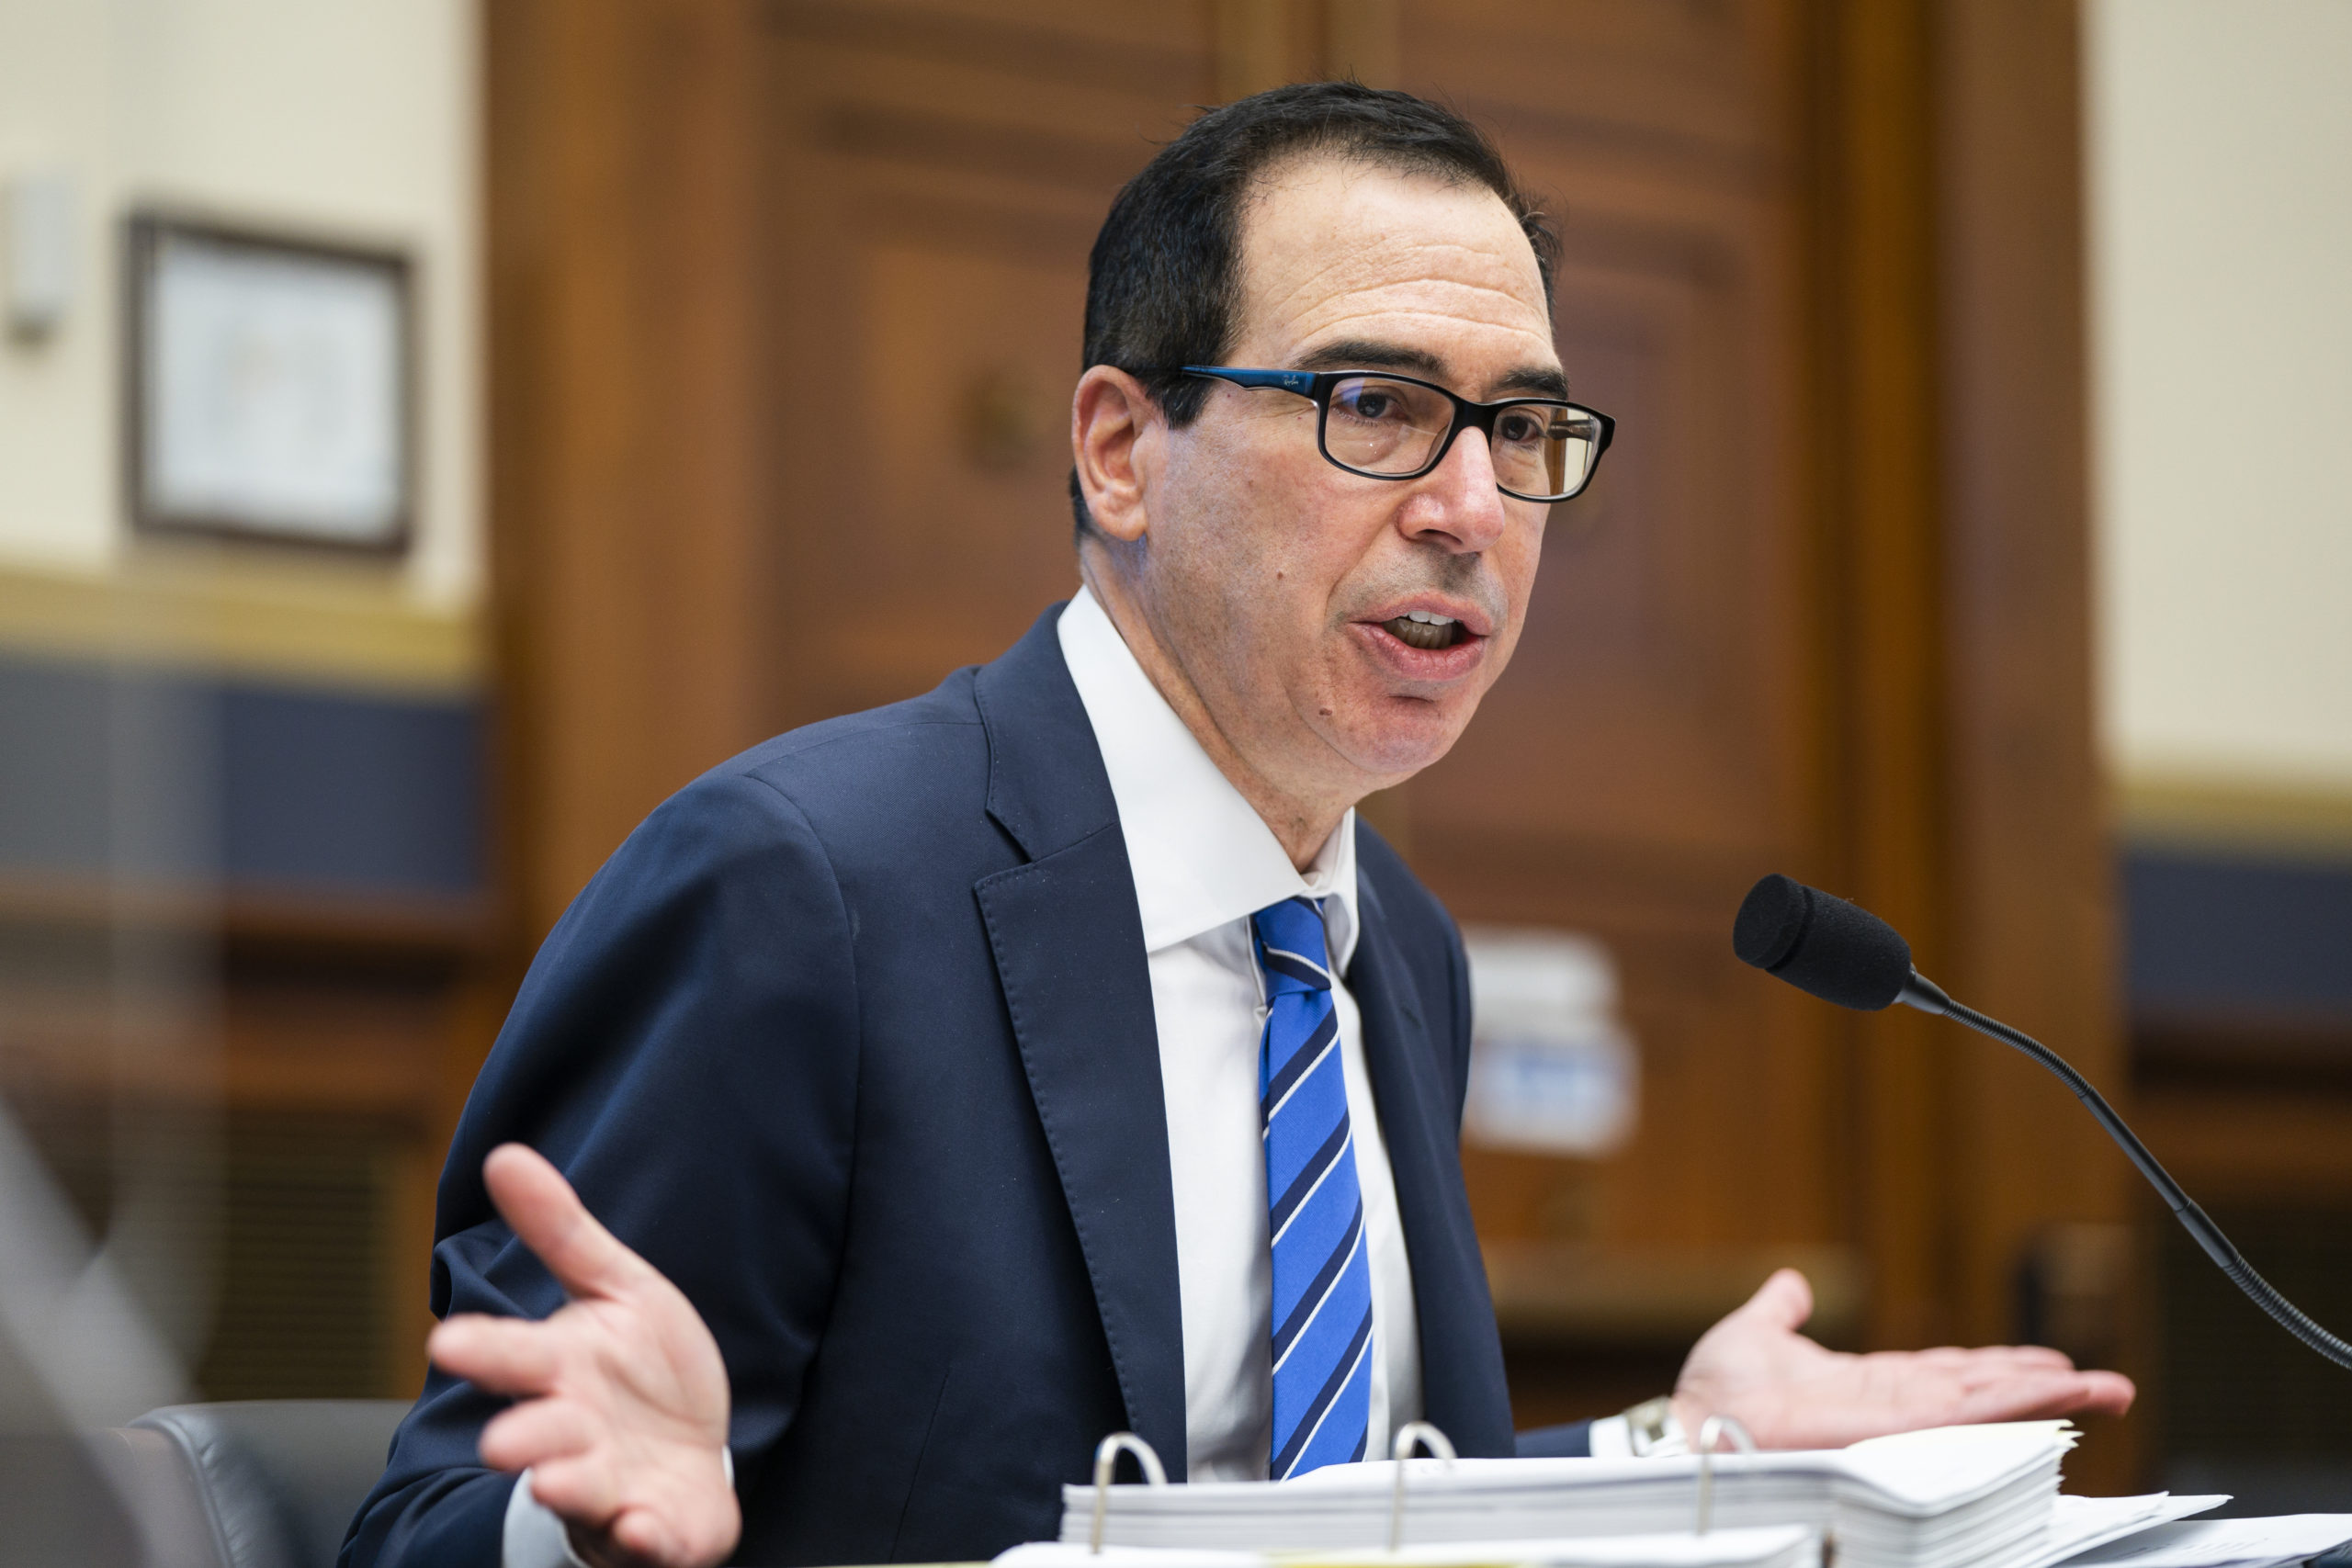 WASHINGTON, DC - DECEMBER 02: Treasury Secretary Steven Mnuchin testifies before a House Financial Services Committee hearing on Oversight of the Treasury Department's and Federal Reserve's Pandemic Response in the Rayburn House Office Building on December 2, 2020 in Washington, DC. (Photo by Jim Lo Scalzo -Pool/Getty Images)